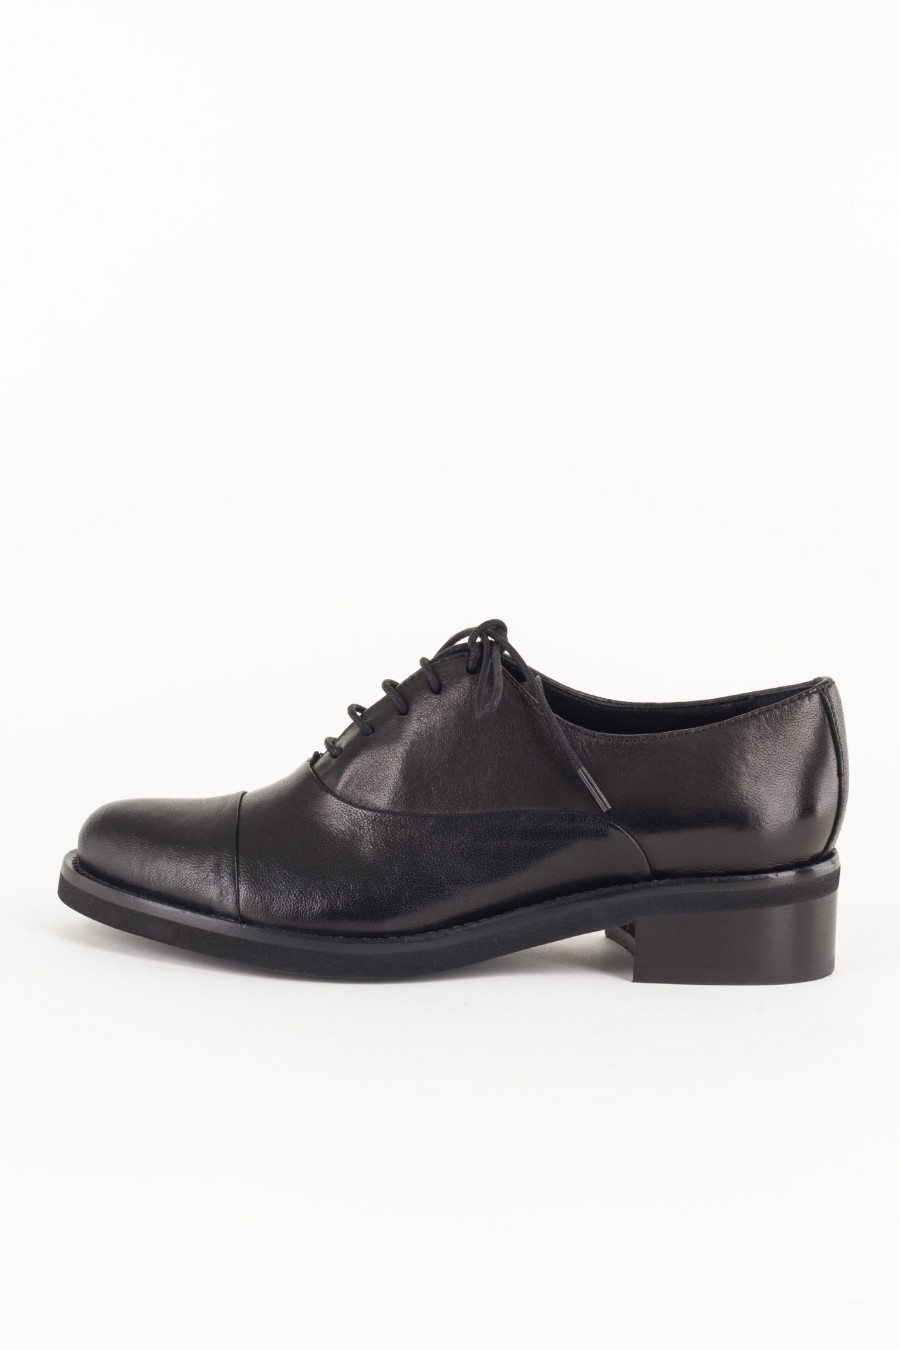 Lace-up black derby shoes